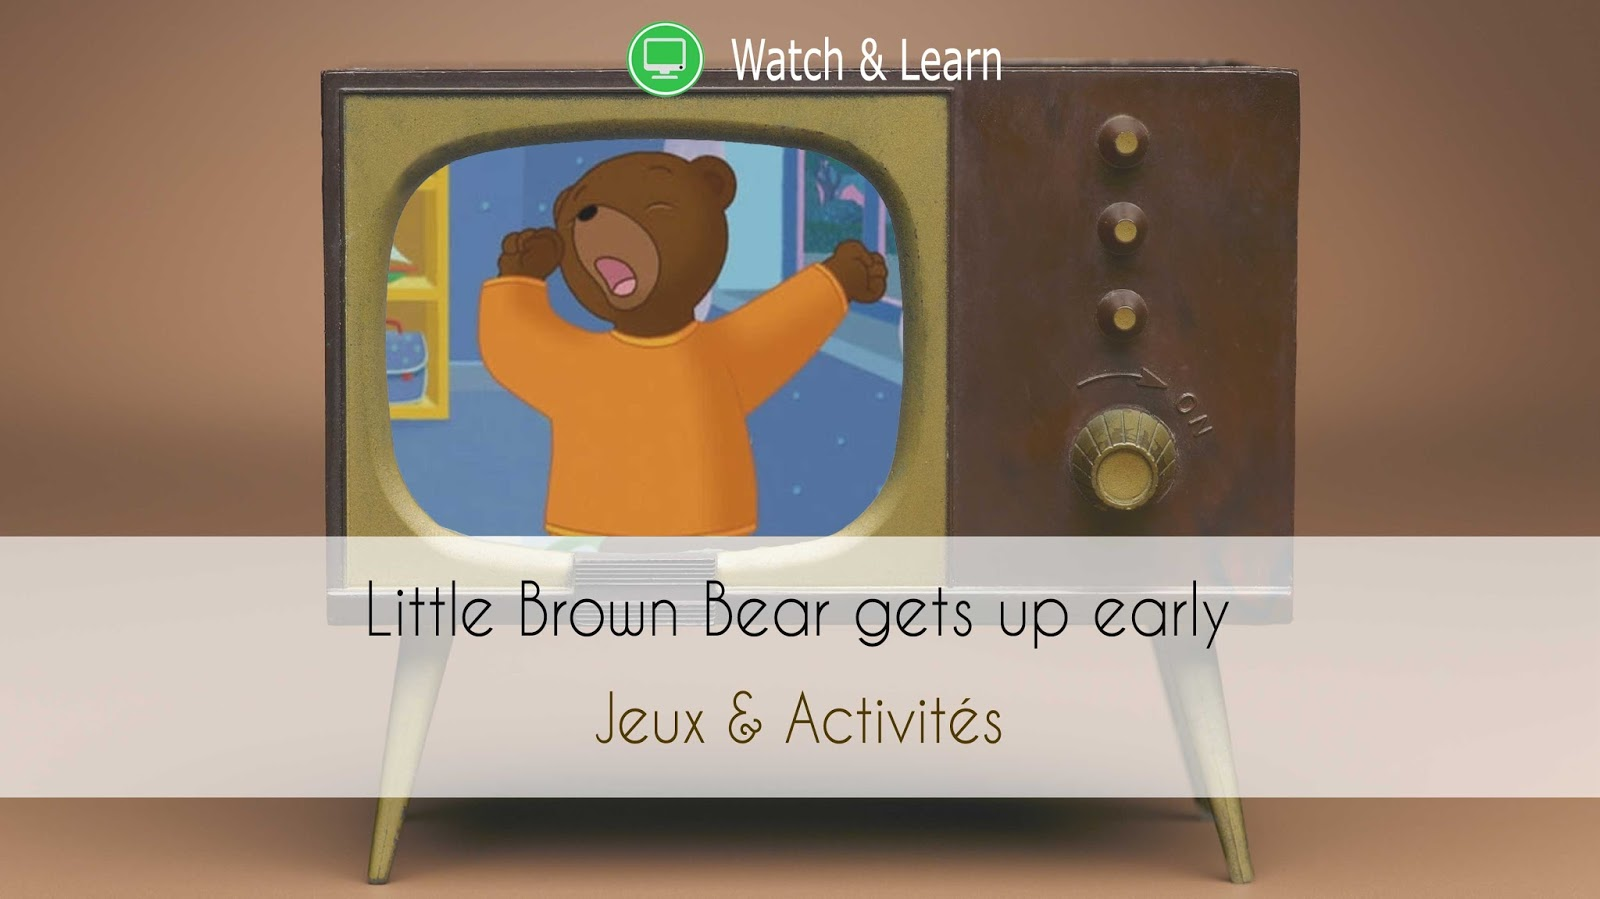 High Five Illustration Family Petit Ours Brun se lève tôt apprendre anglais bilingue